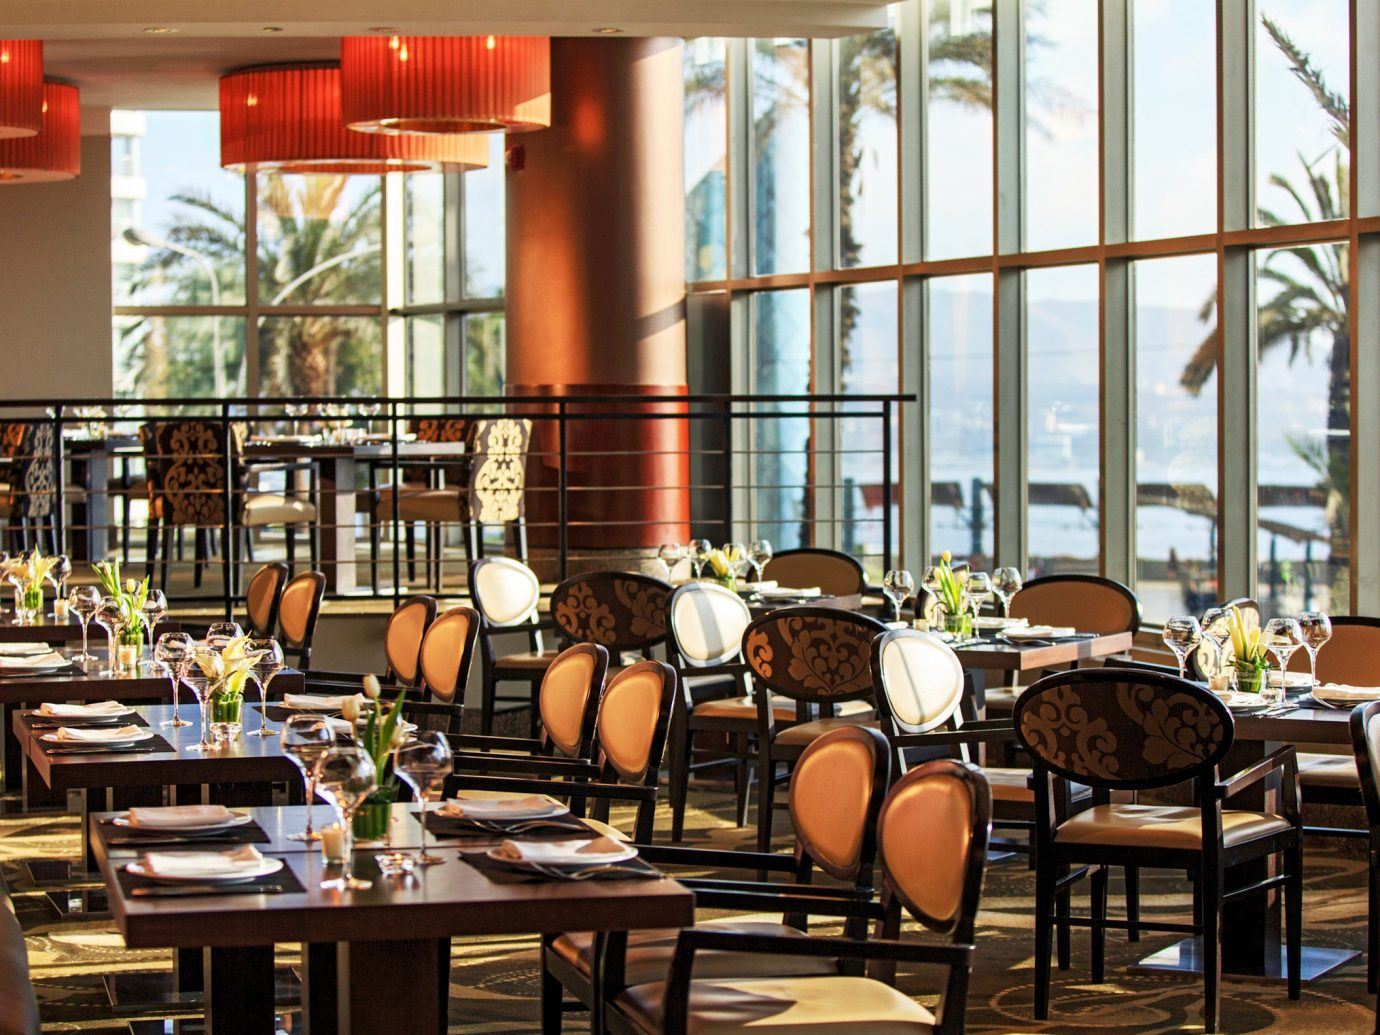 Bar Boutique Hotels Dining Drink Eat Hotels Modern Scenic views table chair indoor window restaurant room meal café interior design cafeteria coffeehouse Resort furniture area set several dining table dining room